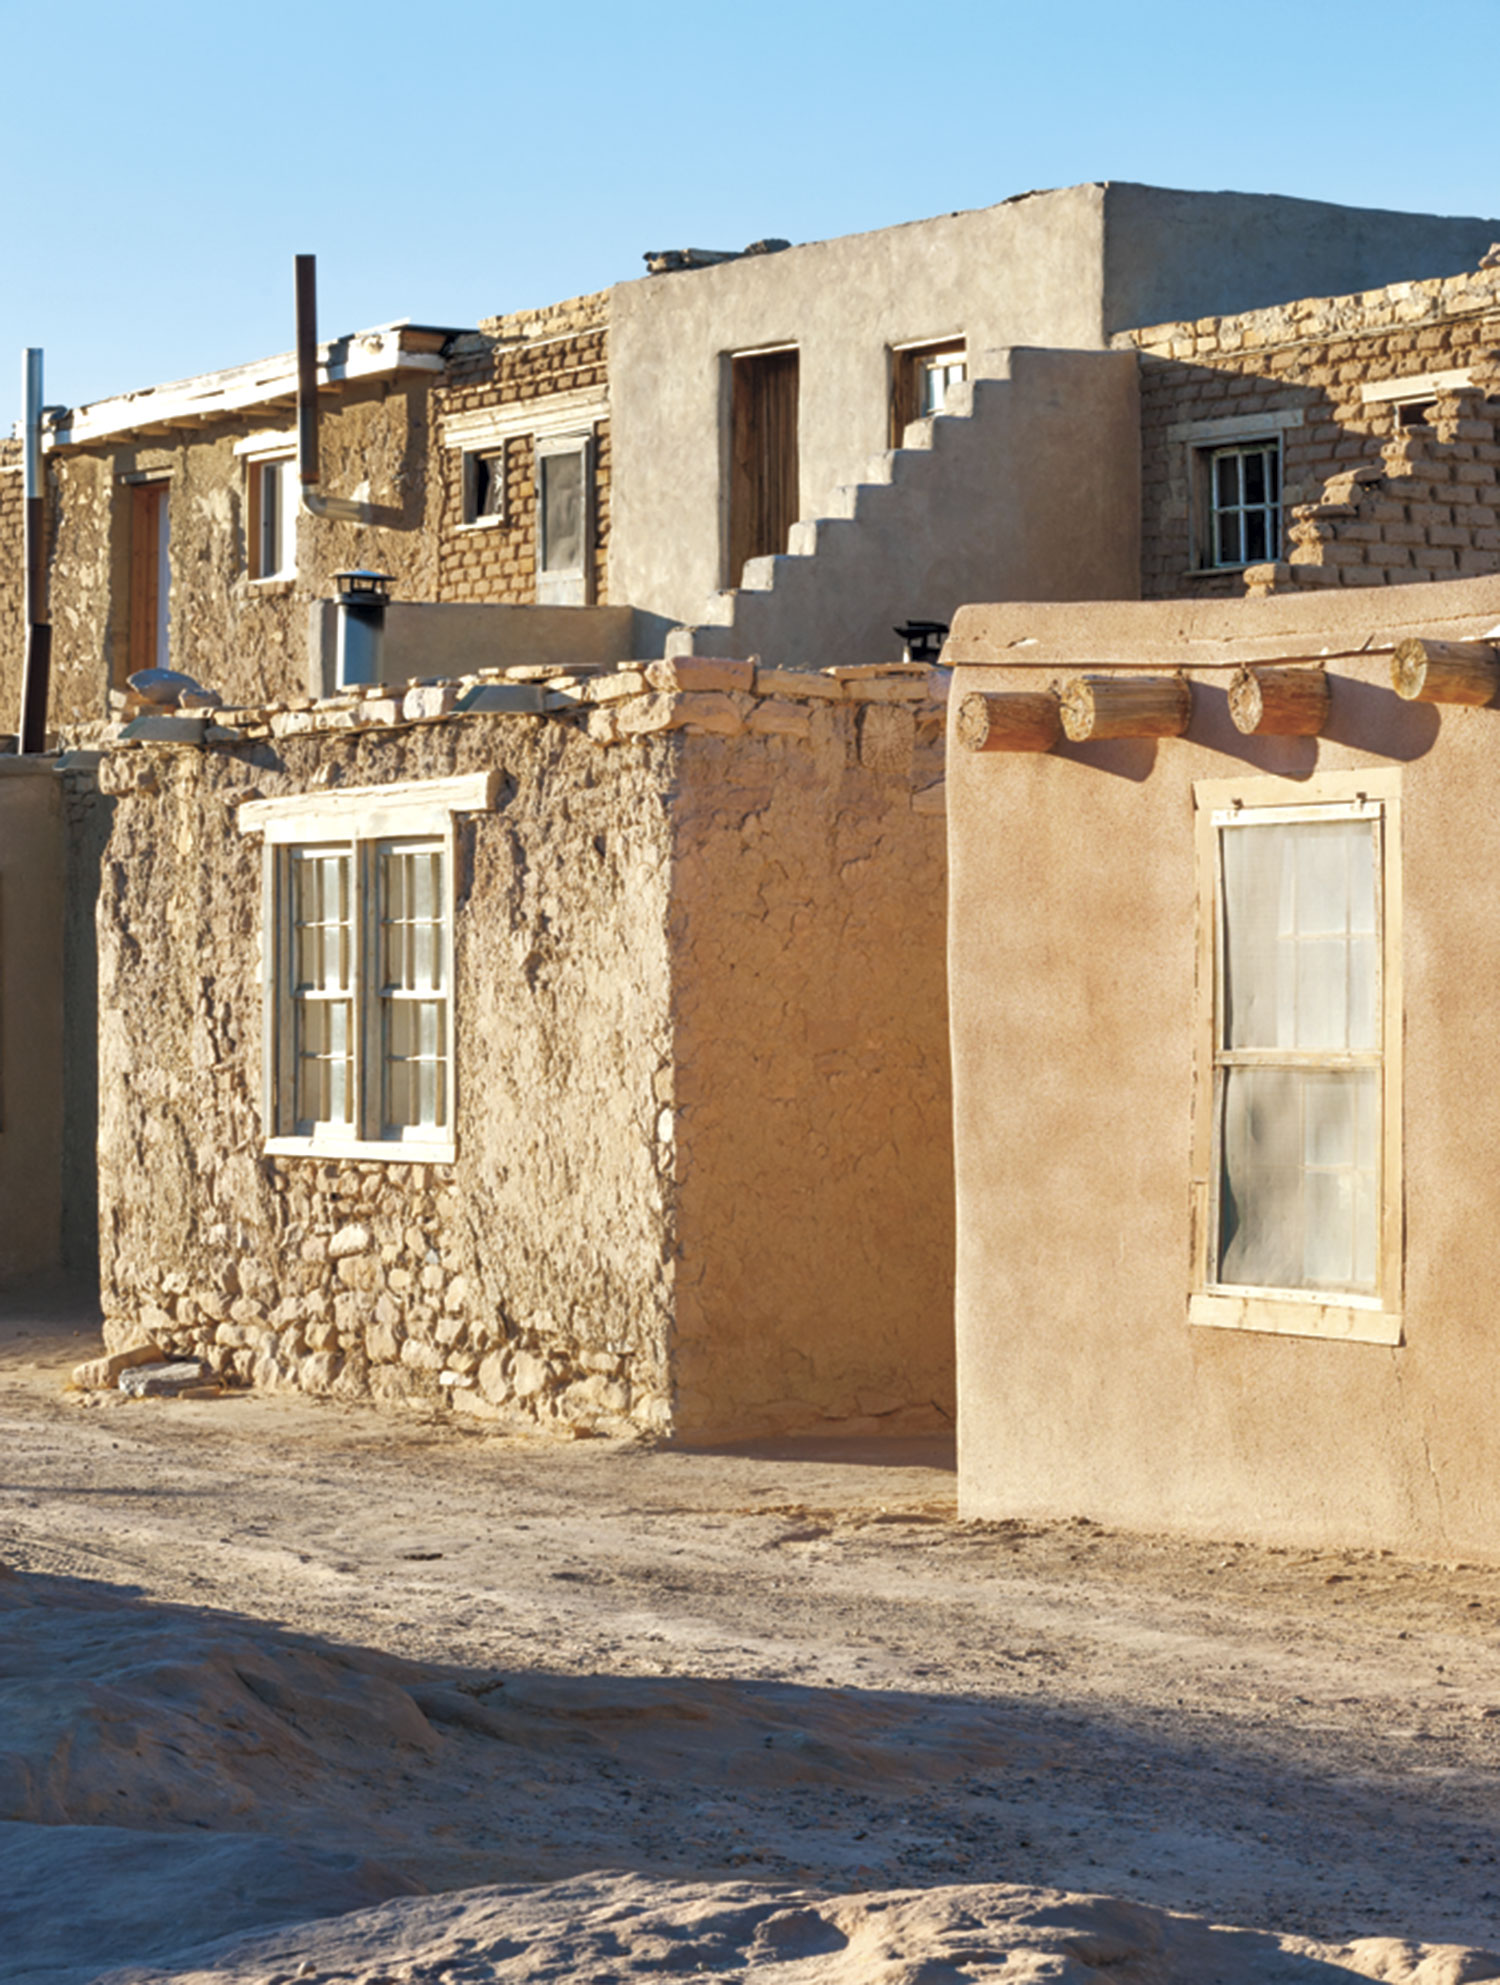 Acoma Pueblo; Photo Courtesy Adobe Stock Images